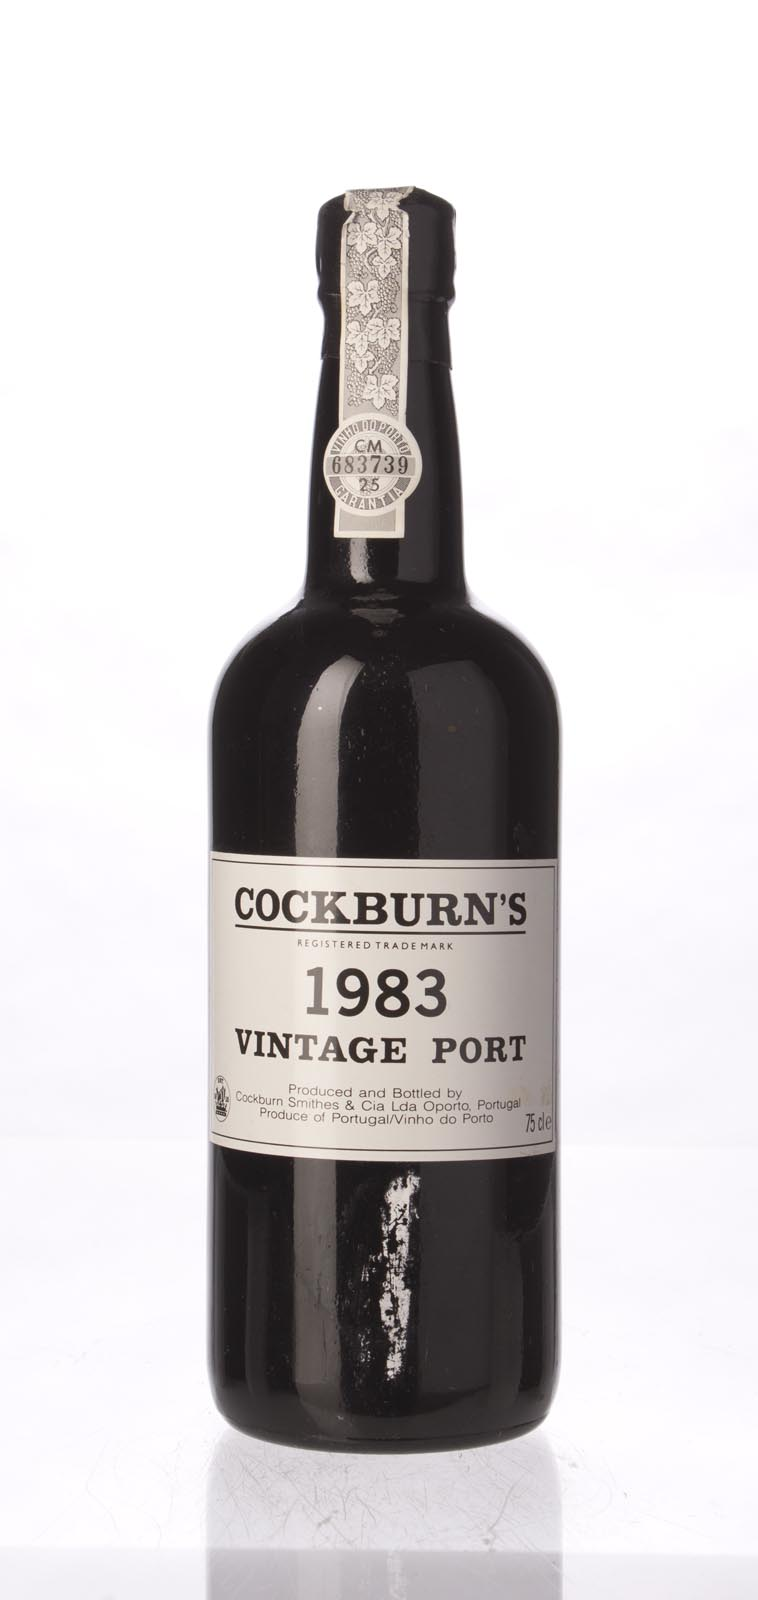 Cockburn Vintage Port 1983, 750mL (WA95, WS97) from The BPW - Merchants of rare and fine wines.